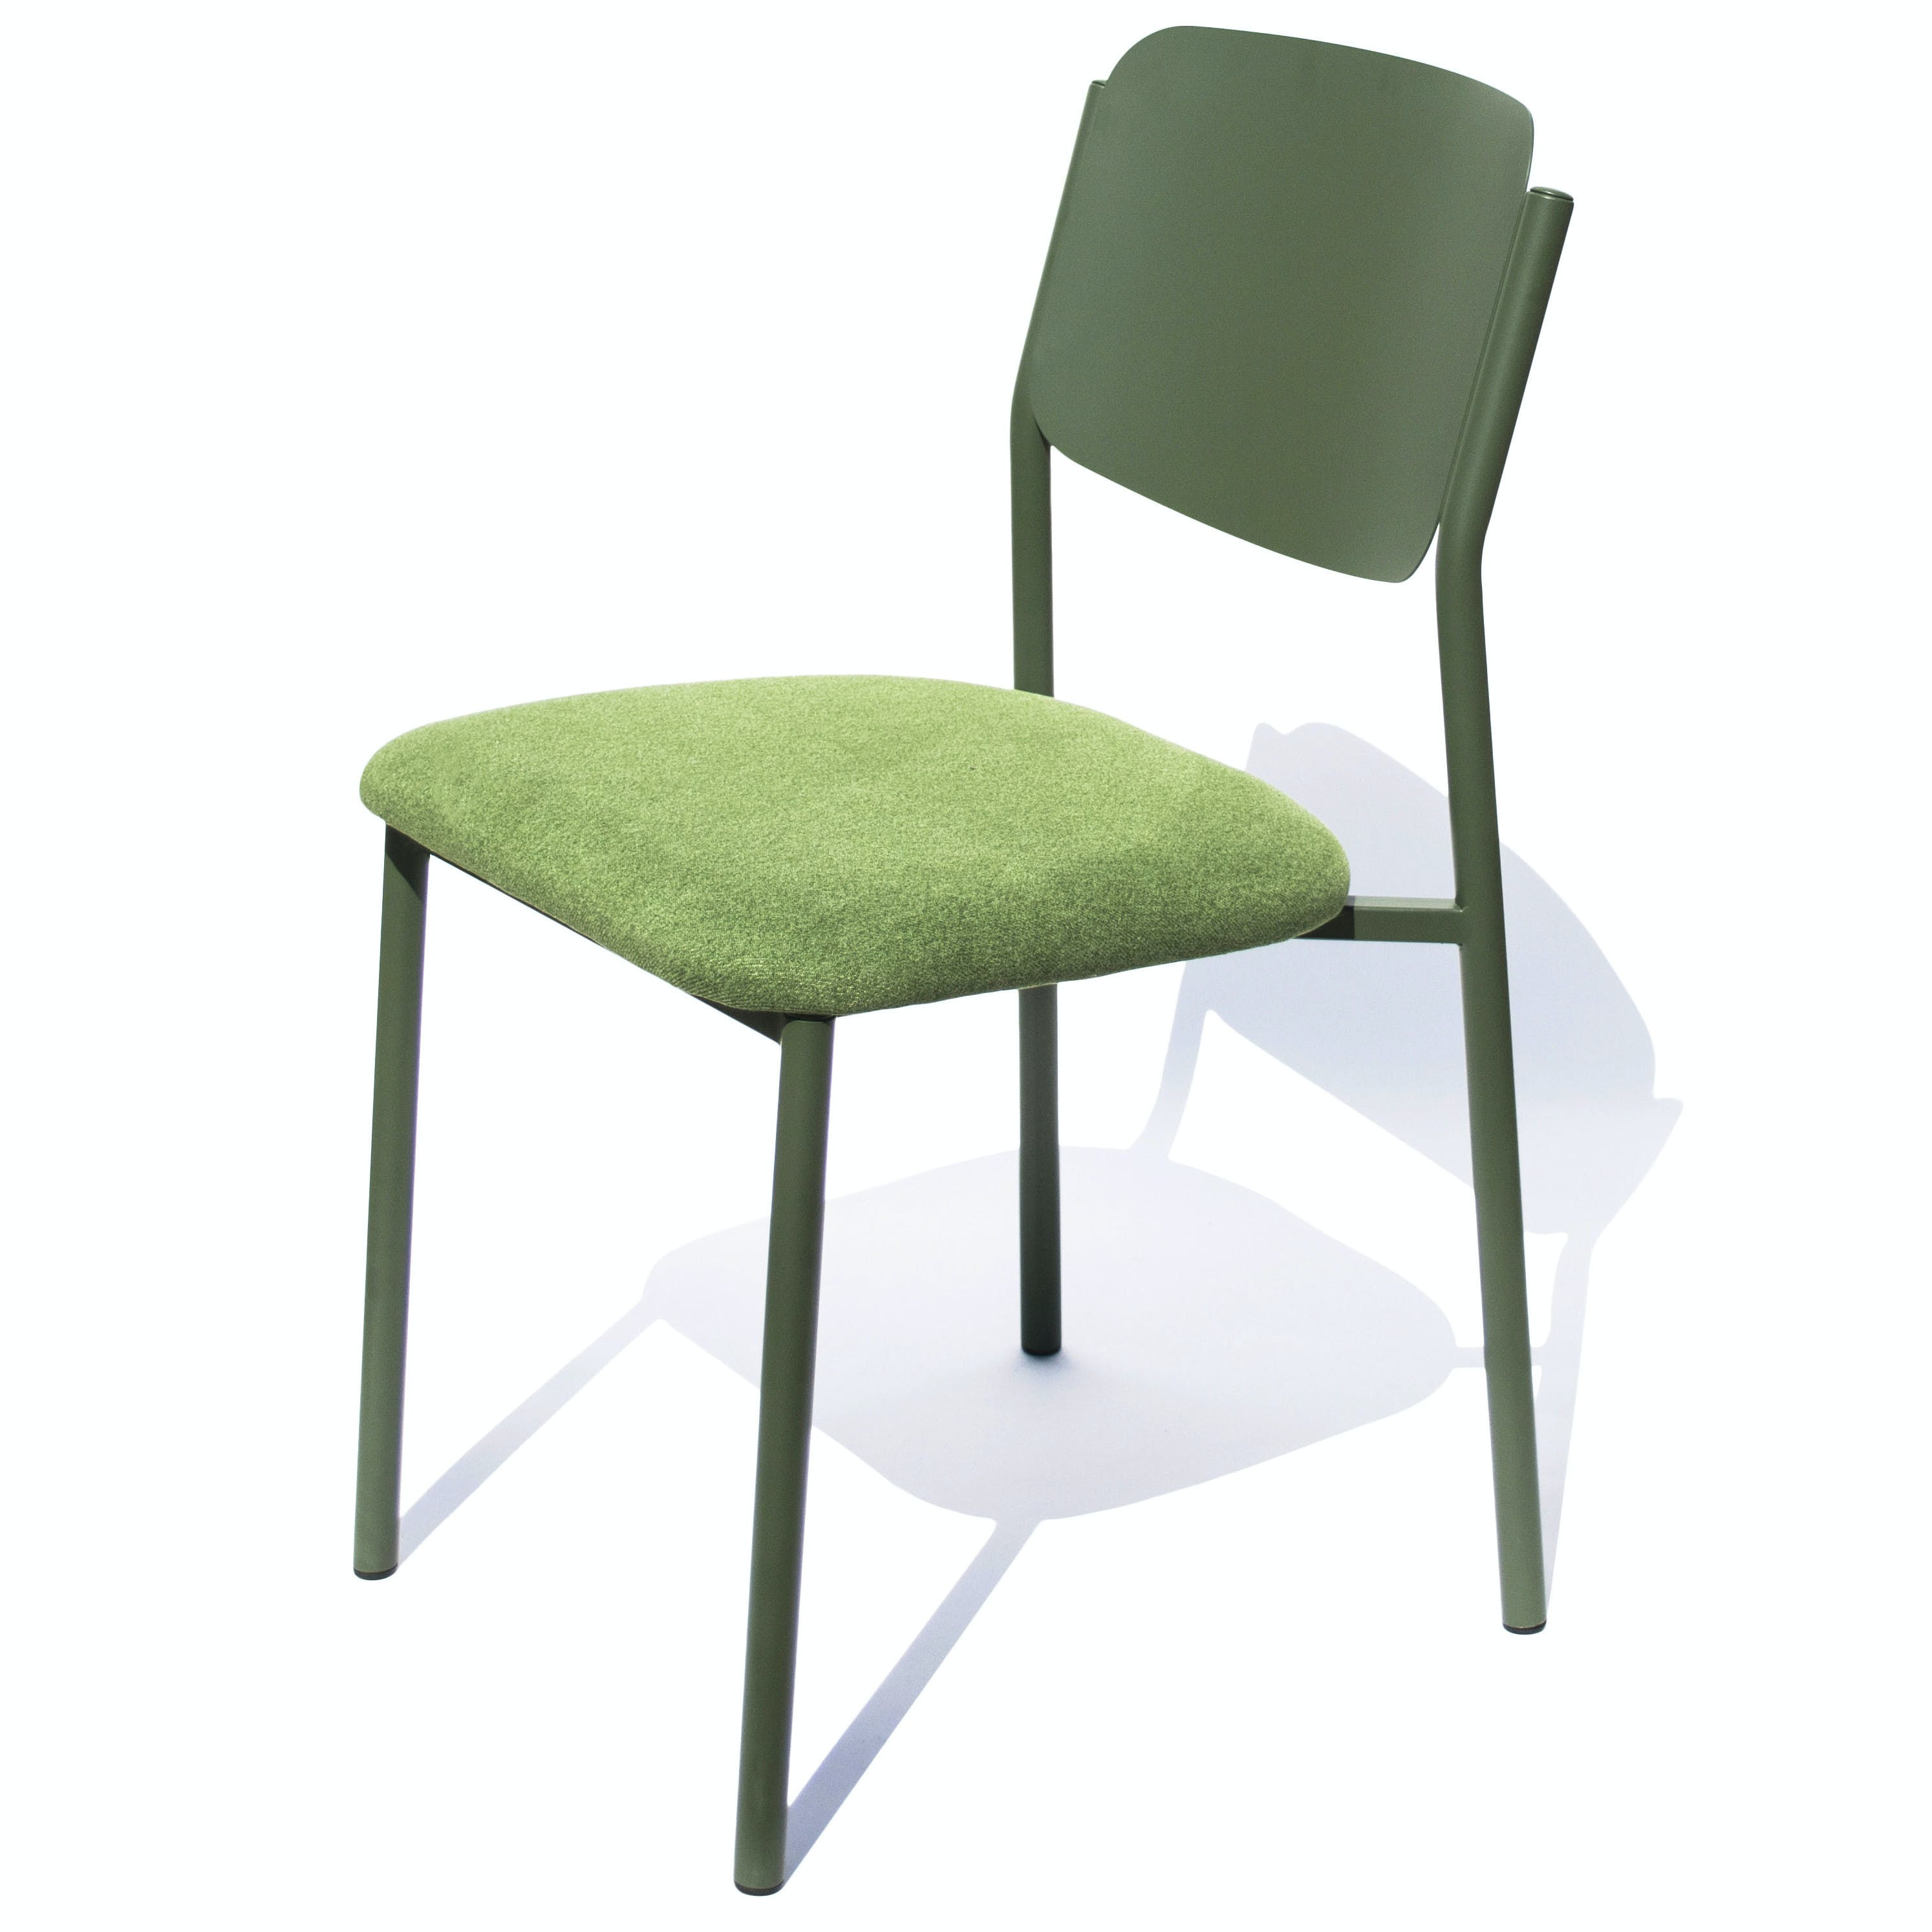 Division 12 Resto Cafe Chair Green Haute Living 190218 193024